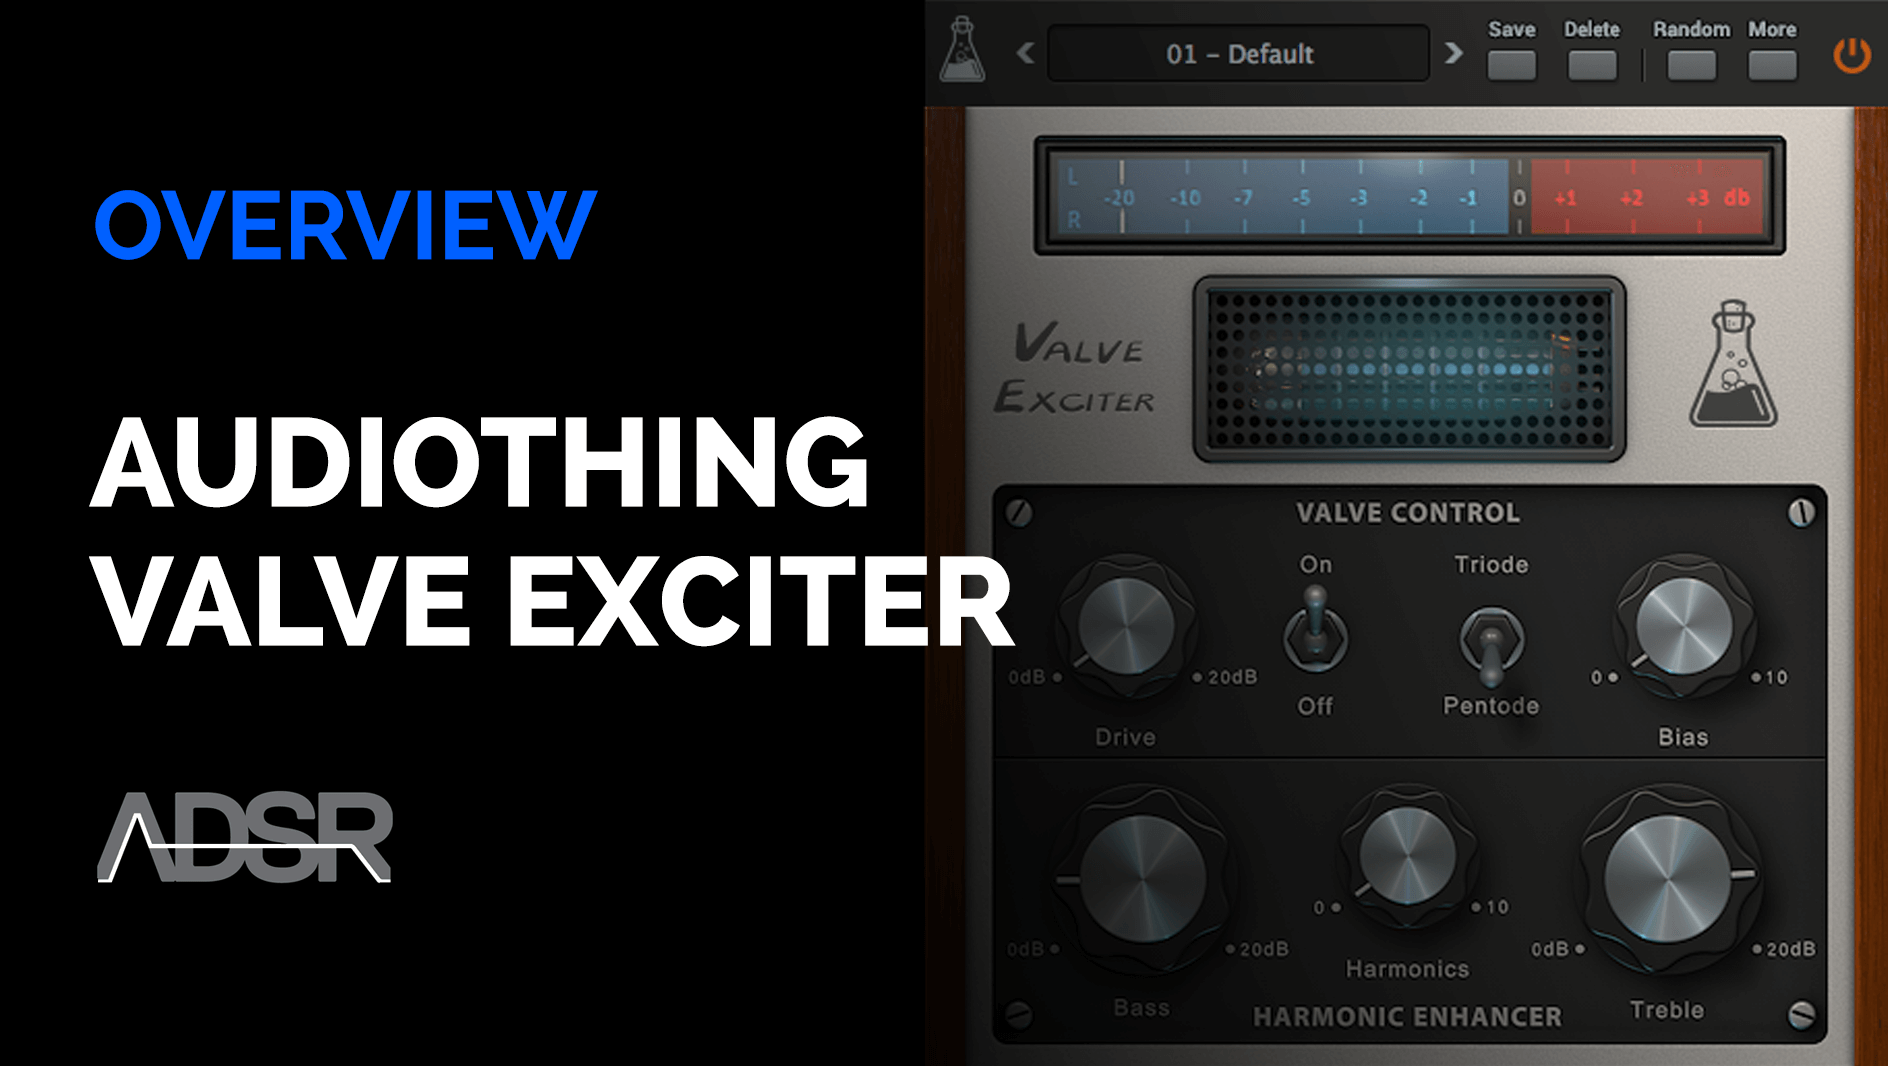 Video related to Valve Exciter